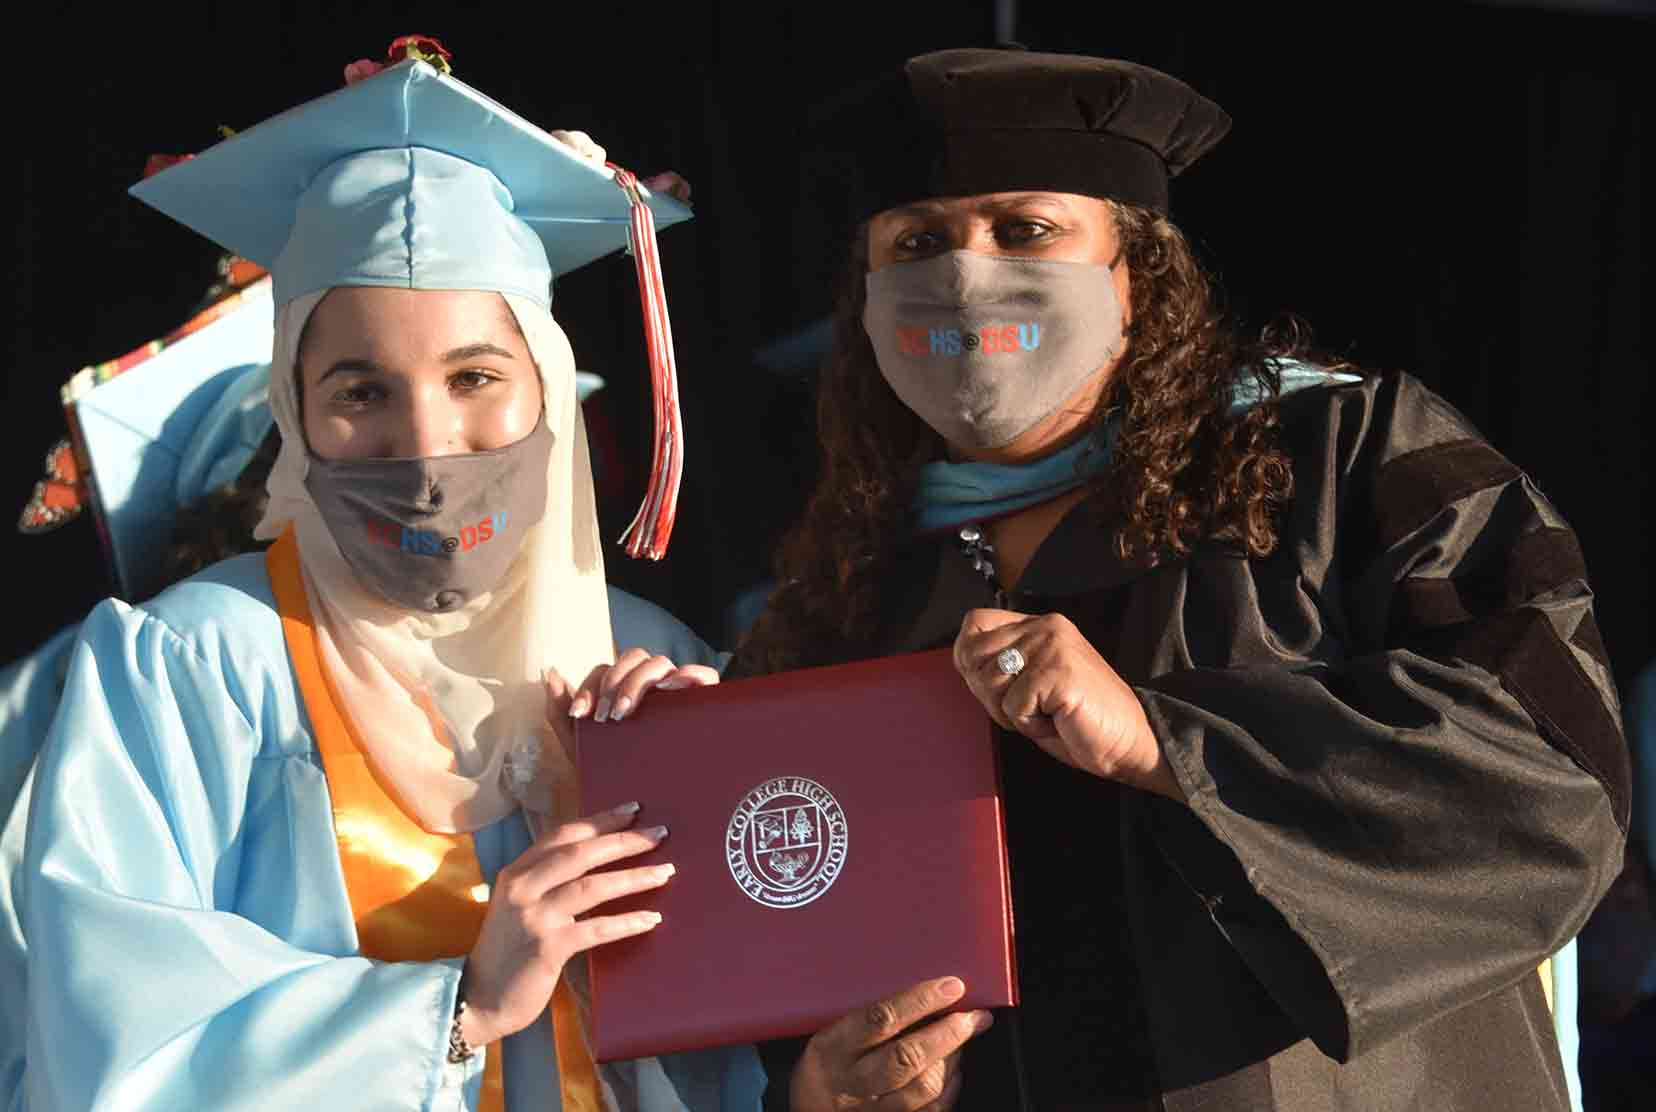 Zayna  Juracka (l), Early College High School Class of 2021 Valedictorian, poses with her diploma and ECHS Director Dr. Evelyn Edney